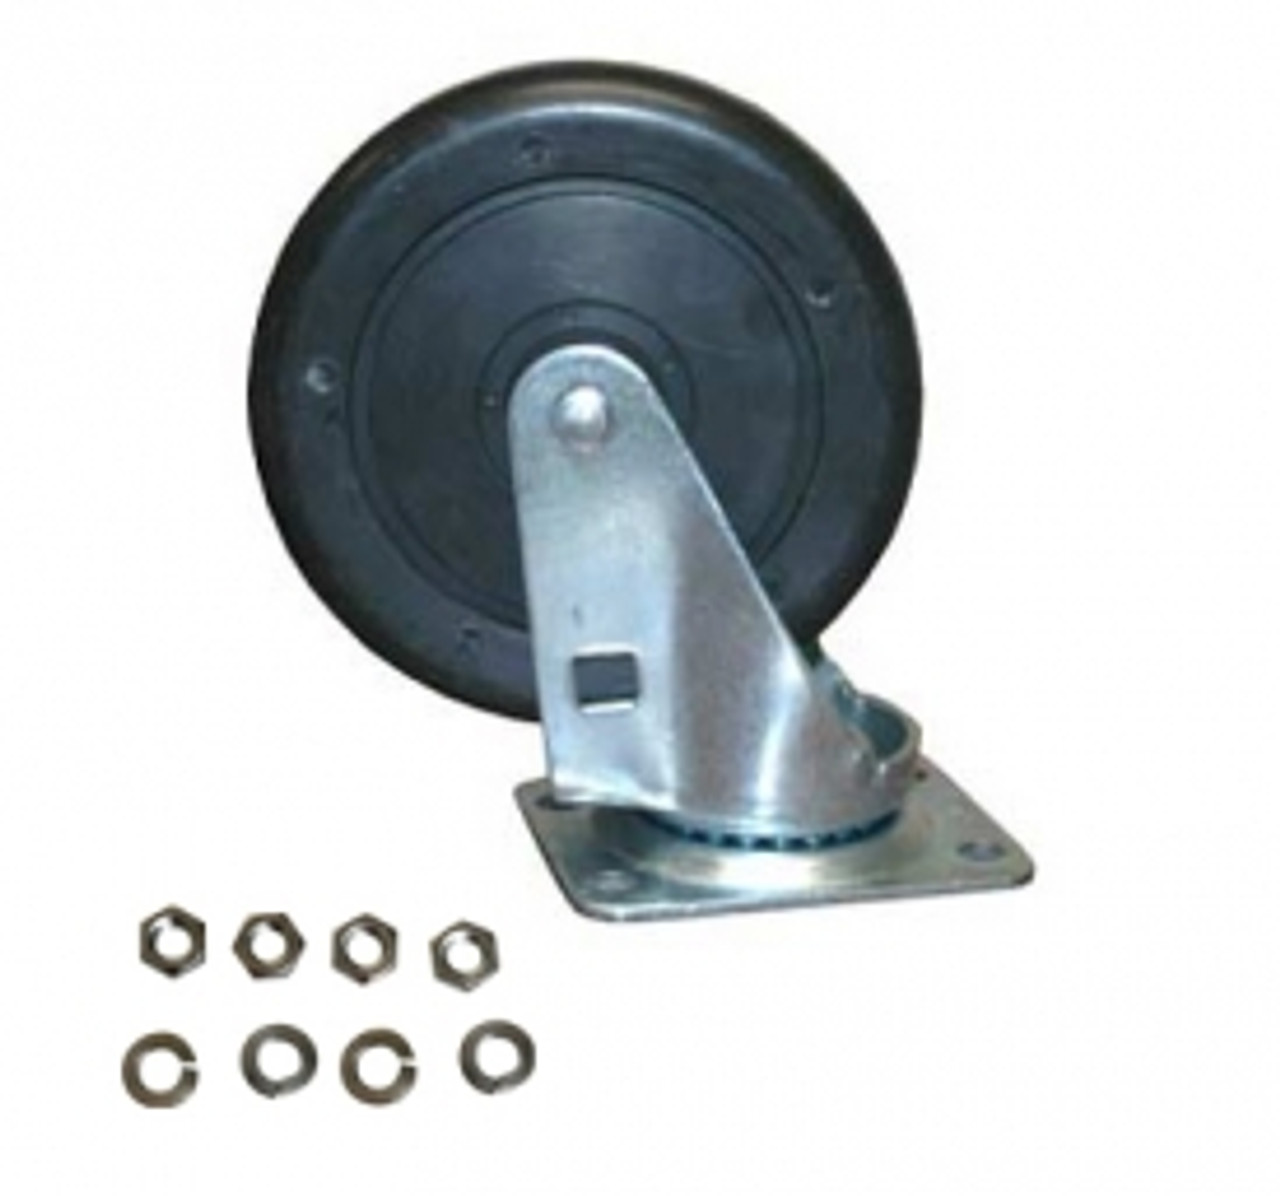 5 inch Swivel Caster with Hardware